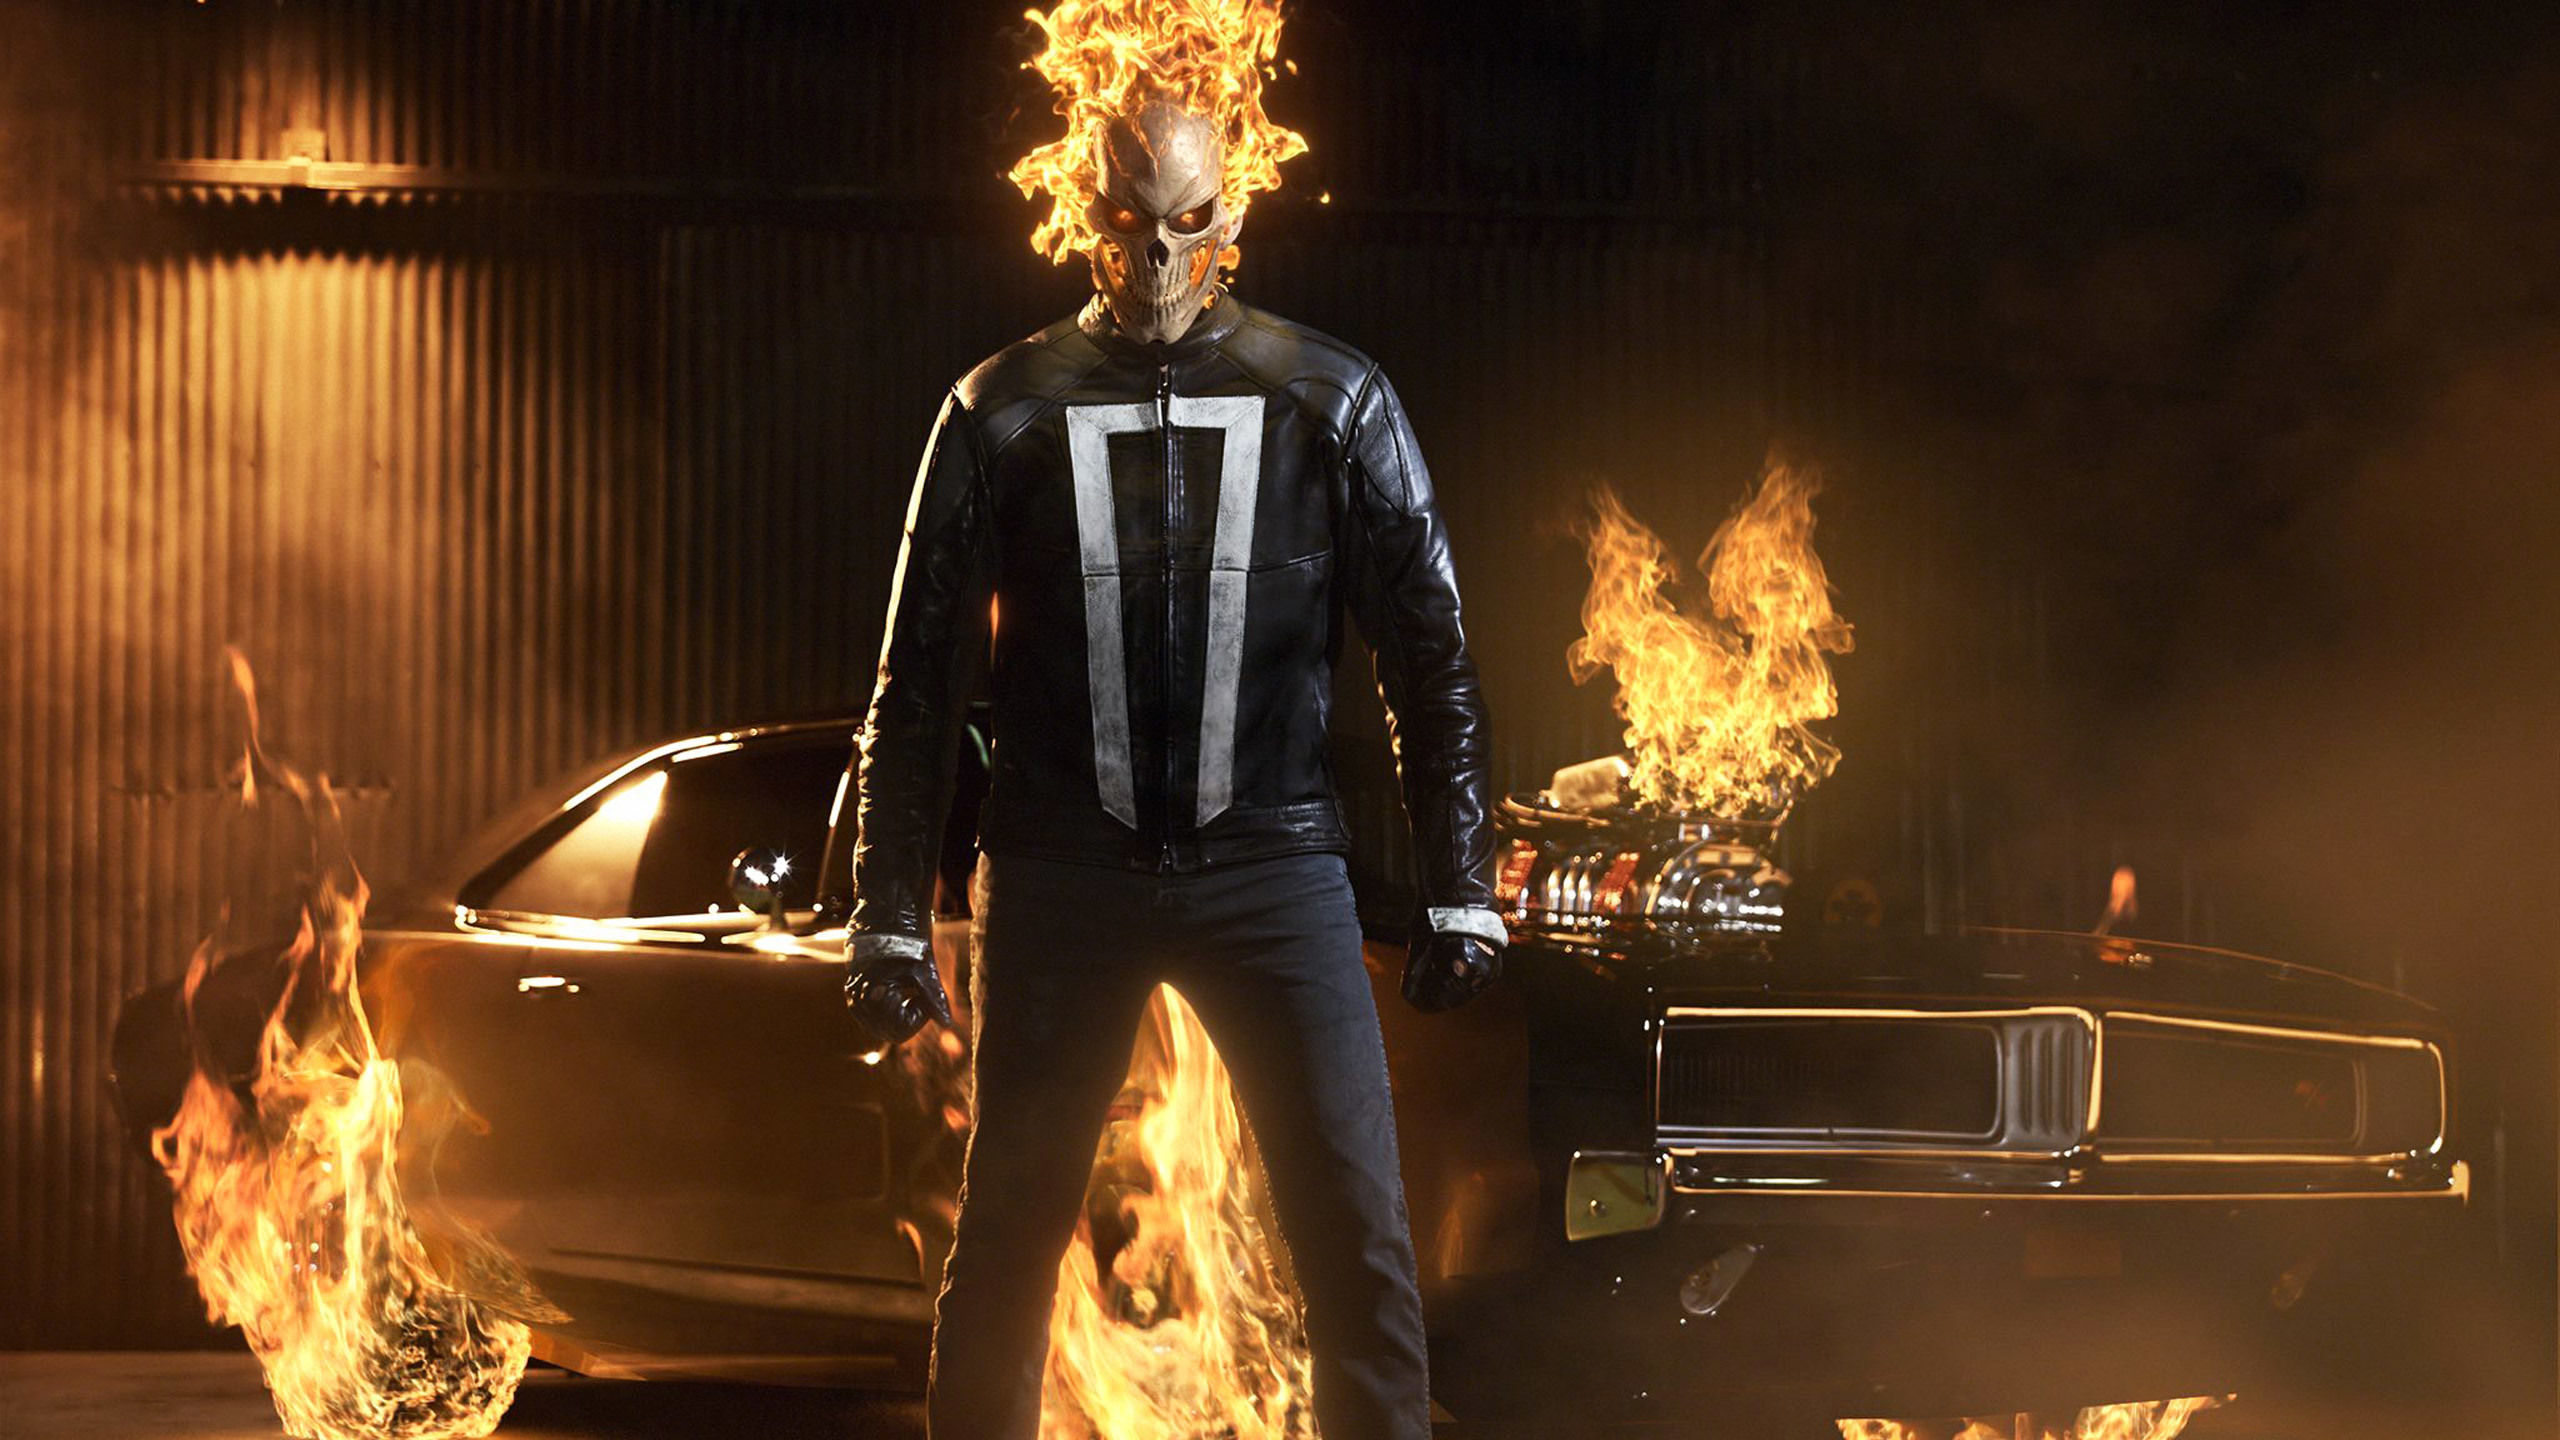 TV Series / Ghost Rider Wallpaper. Ghost Rider, Agents of SHIELD …